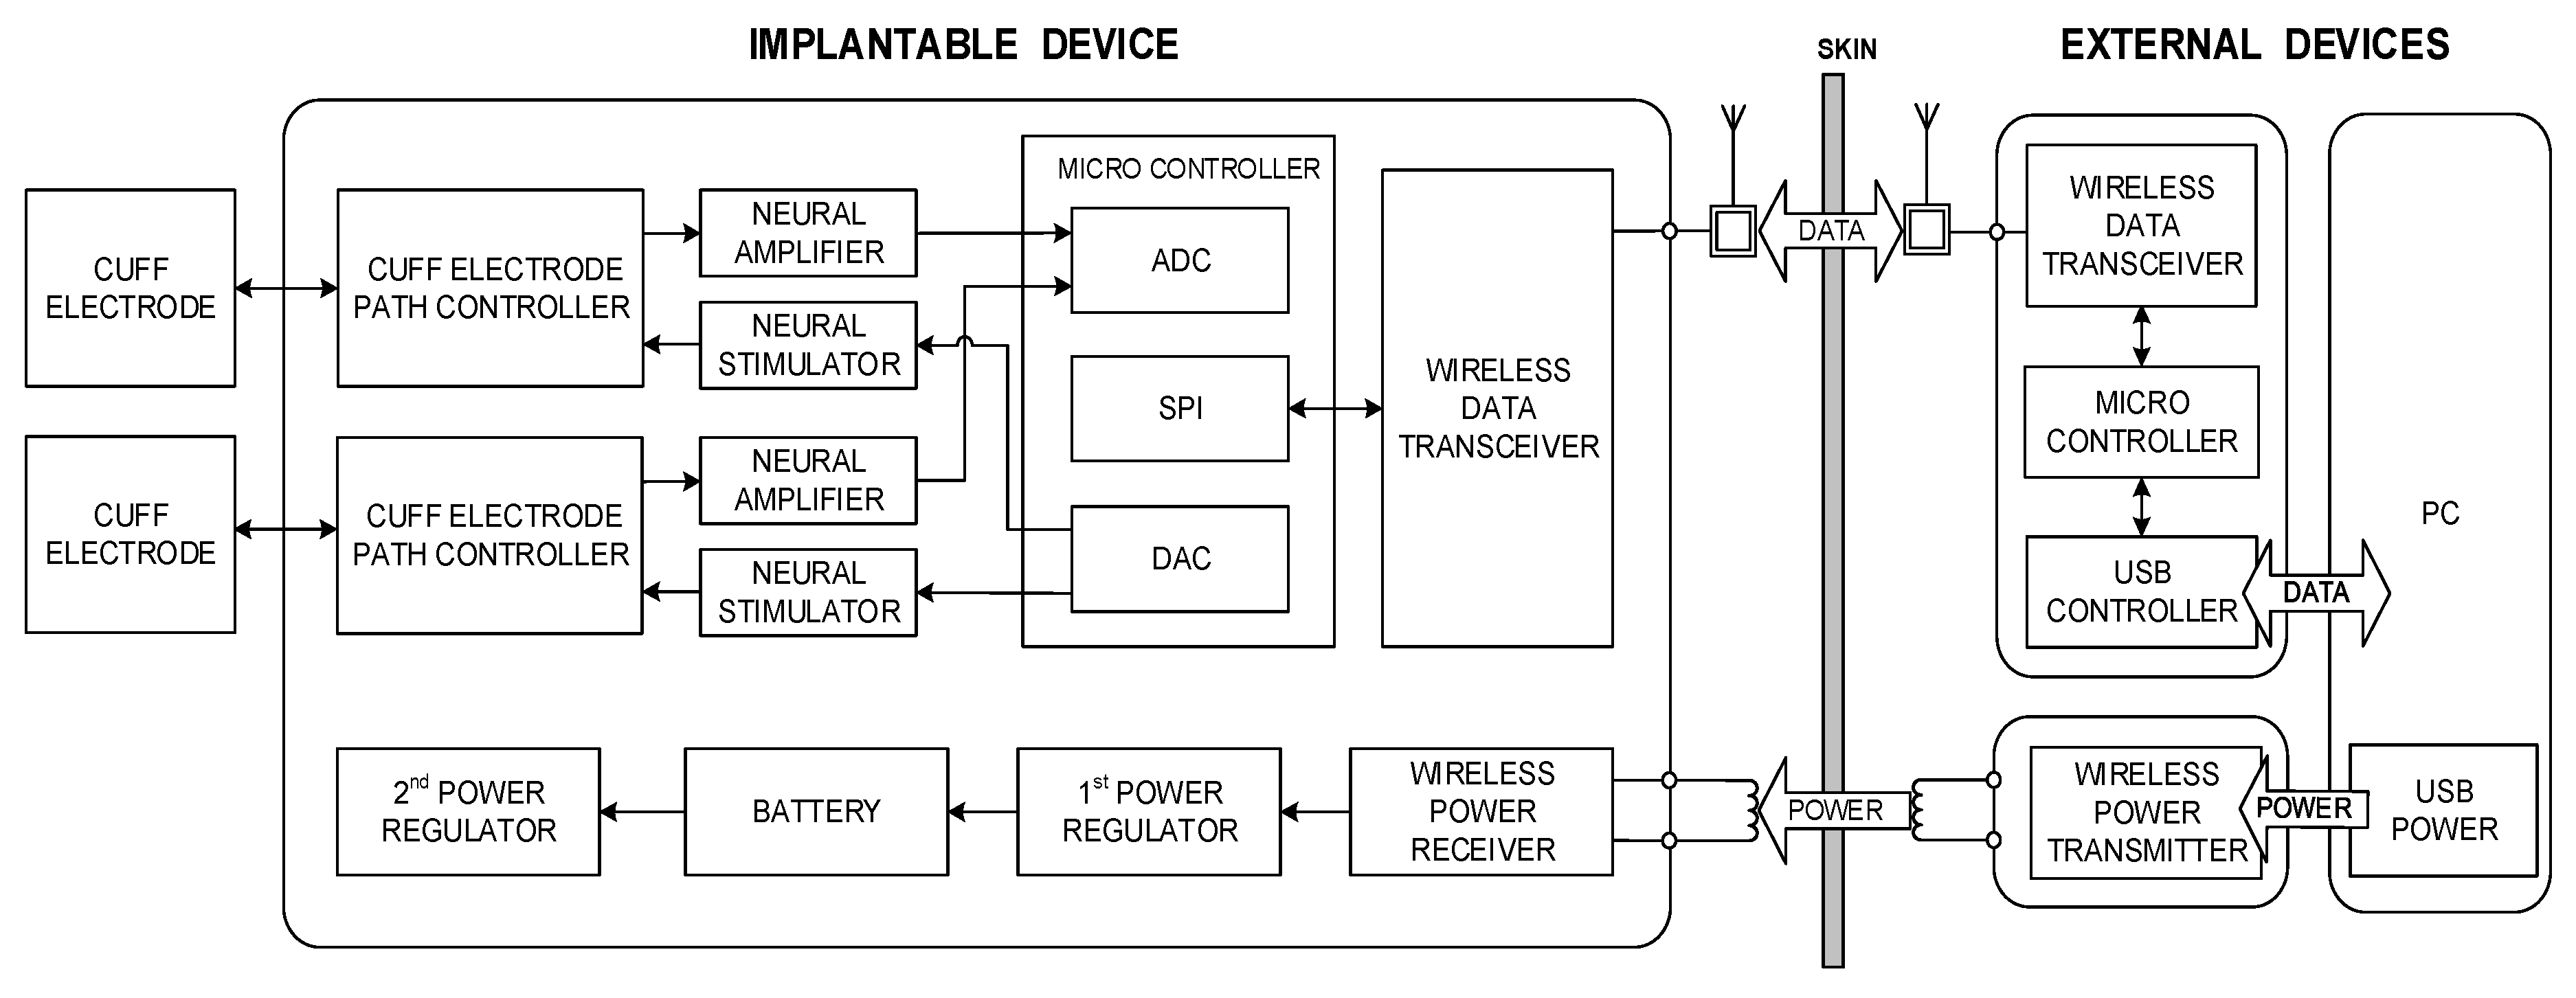 Sensors Free Full Text An Implantable Wireless Neural Interface Figure 1 System Block Diagram D Click Image For Larger View Figures No